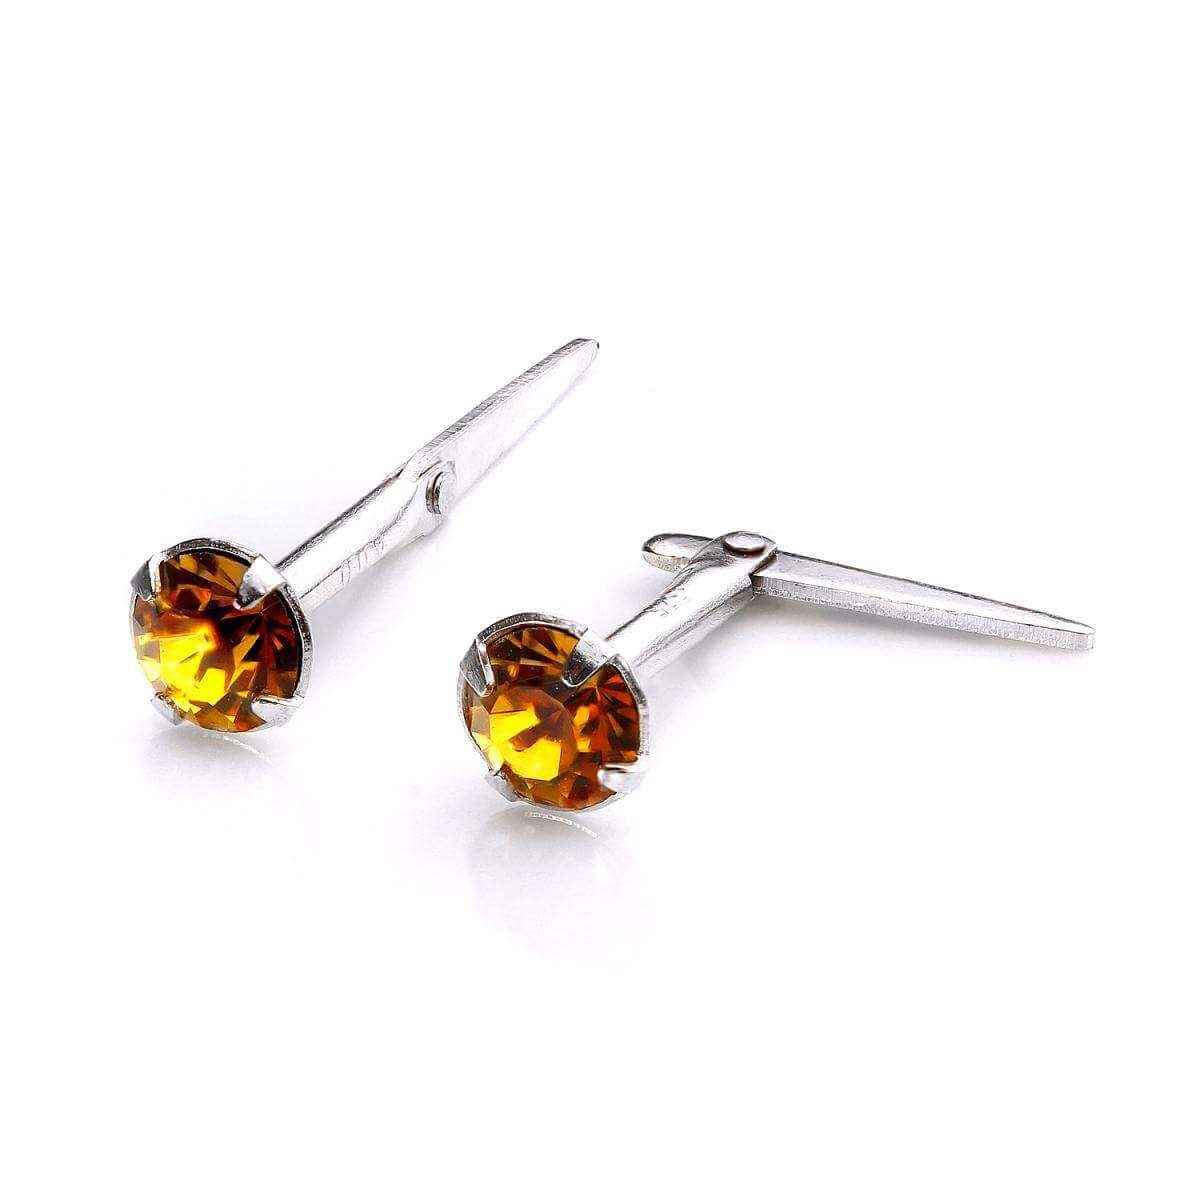 Sterling Silver Andralok Stud Earrings with 3mm Topaz Crystal